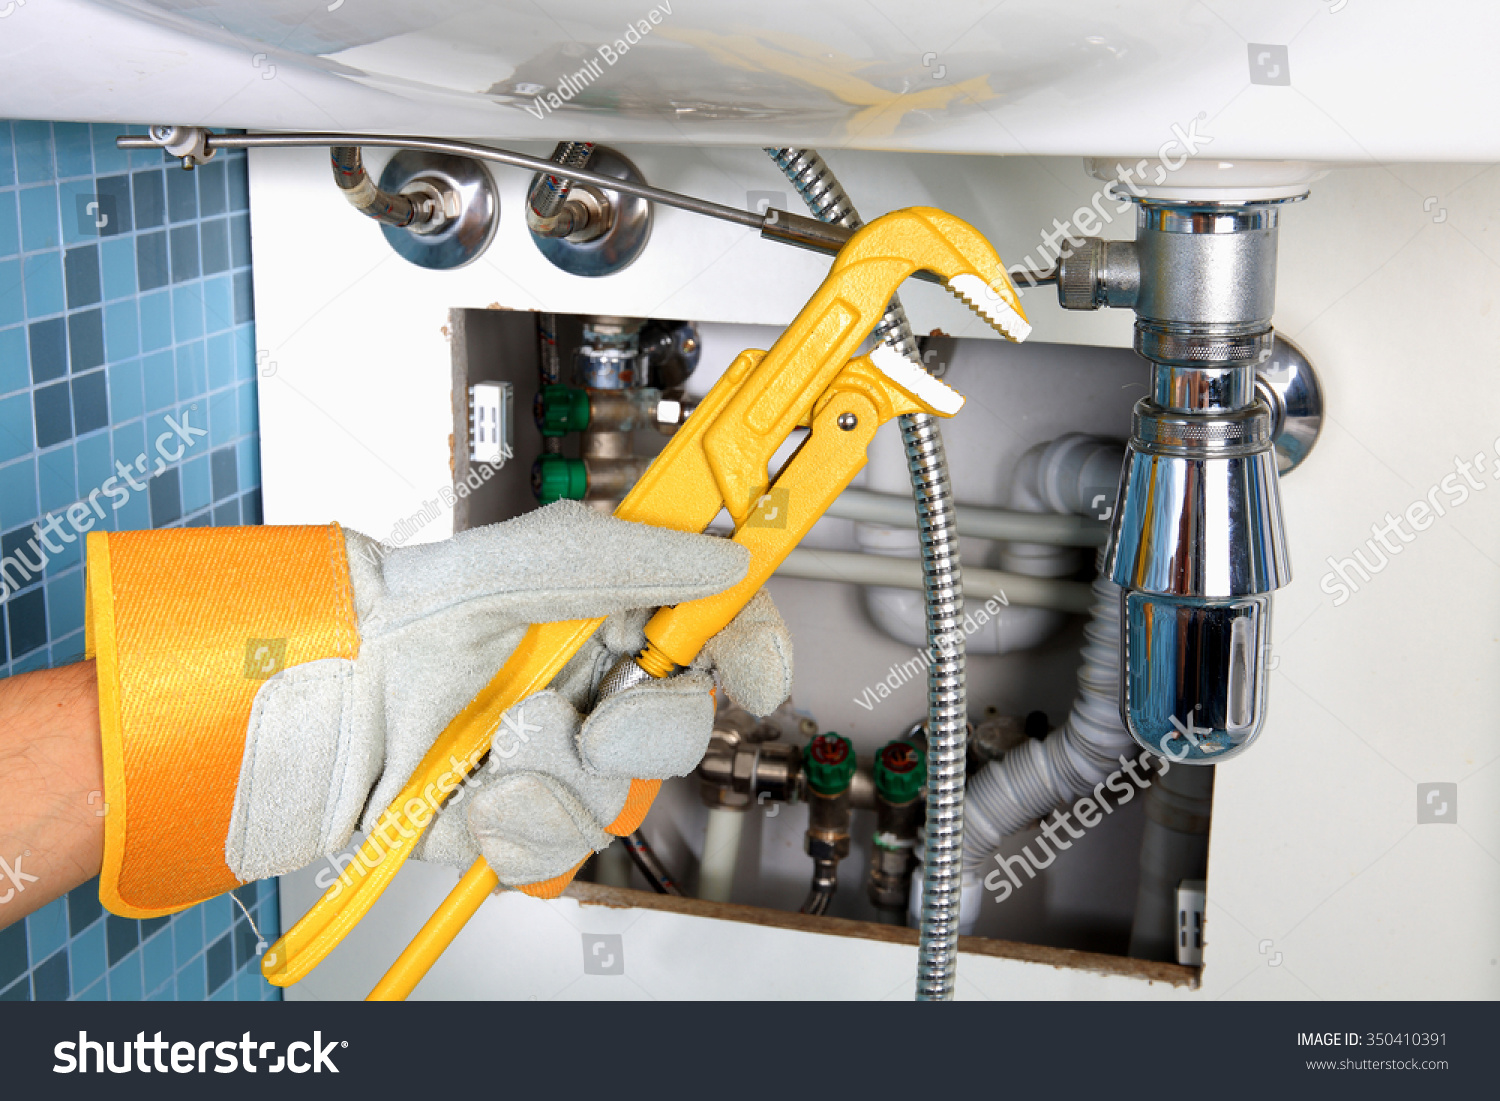 Plumbing work, plumbing repair from A to Z: a selection of sites